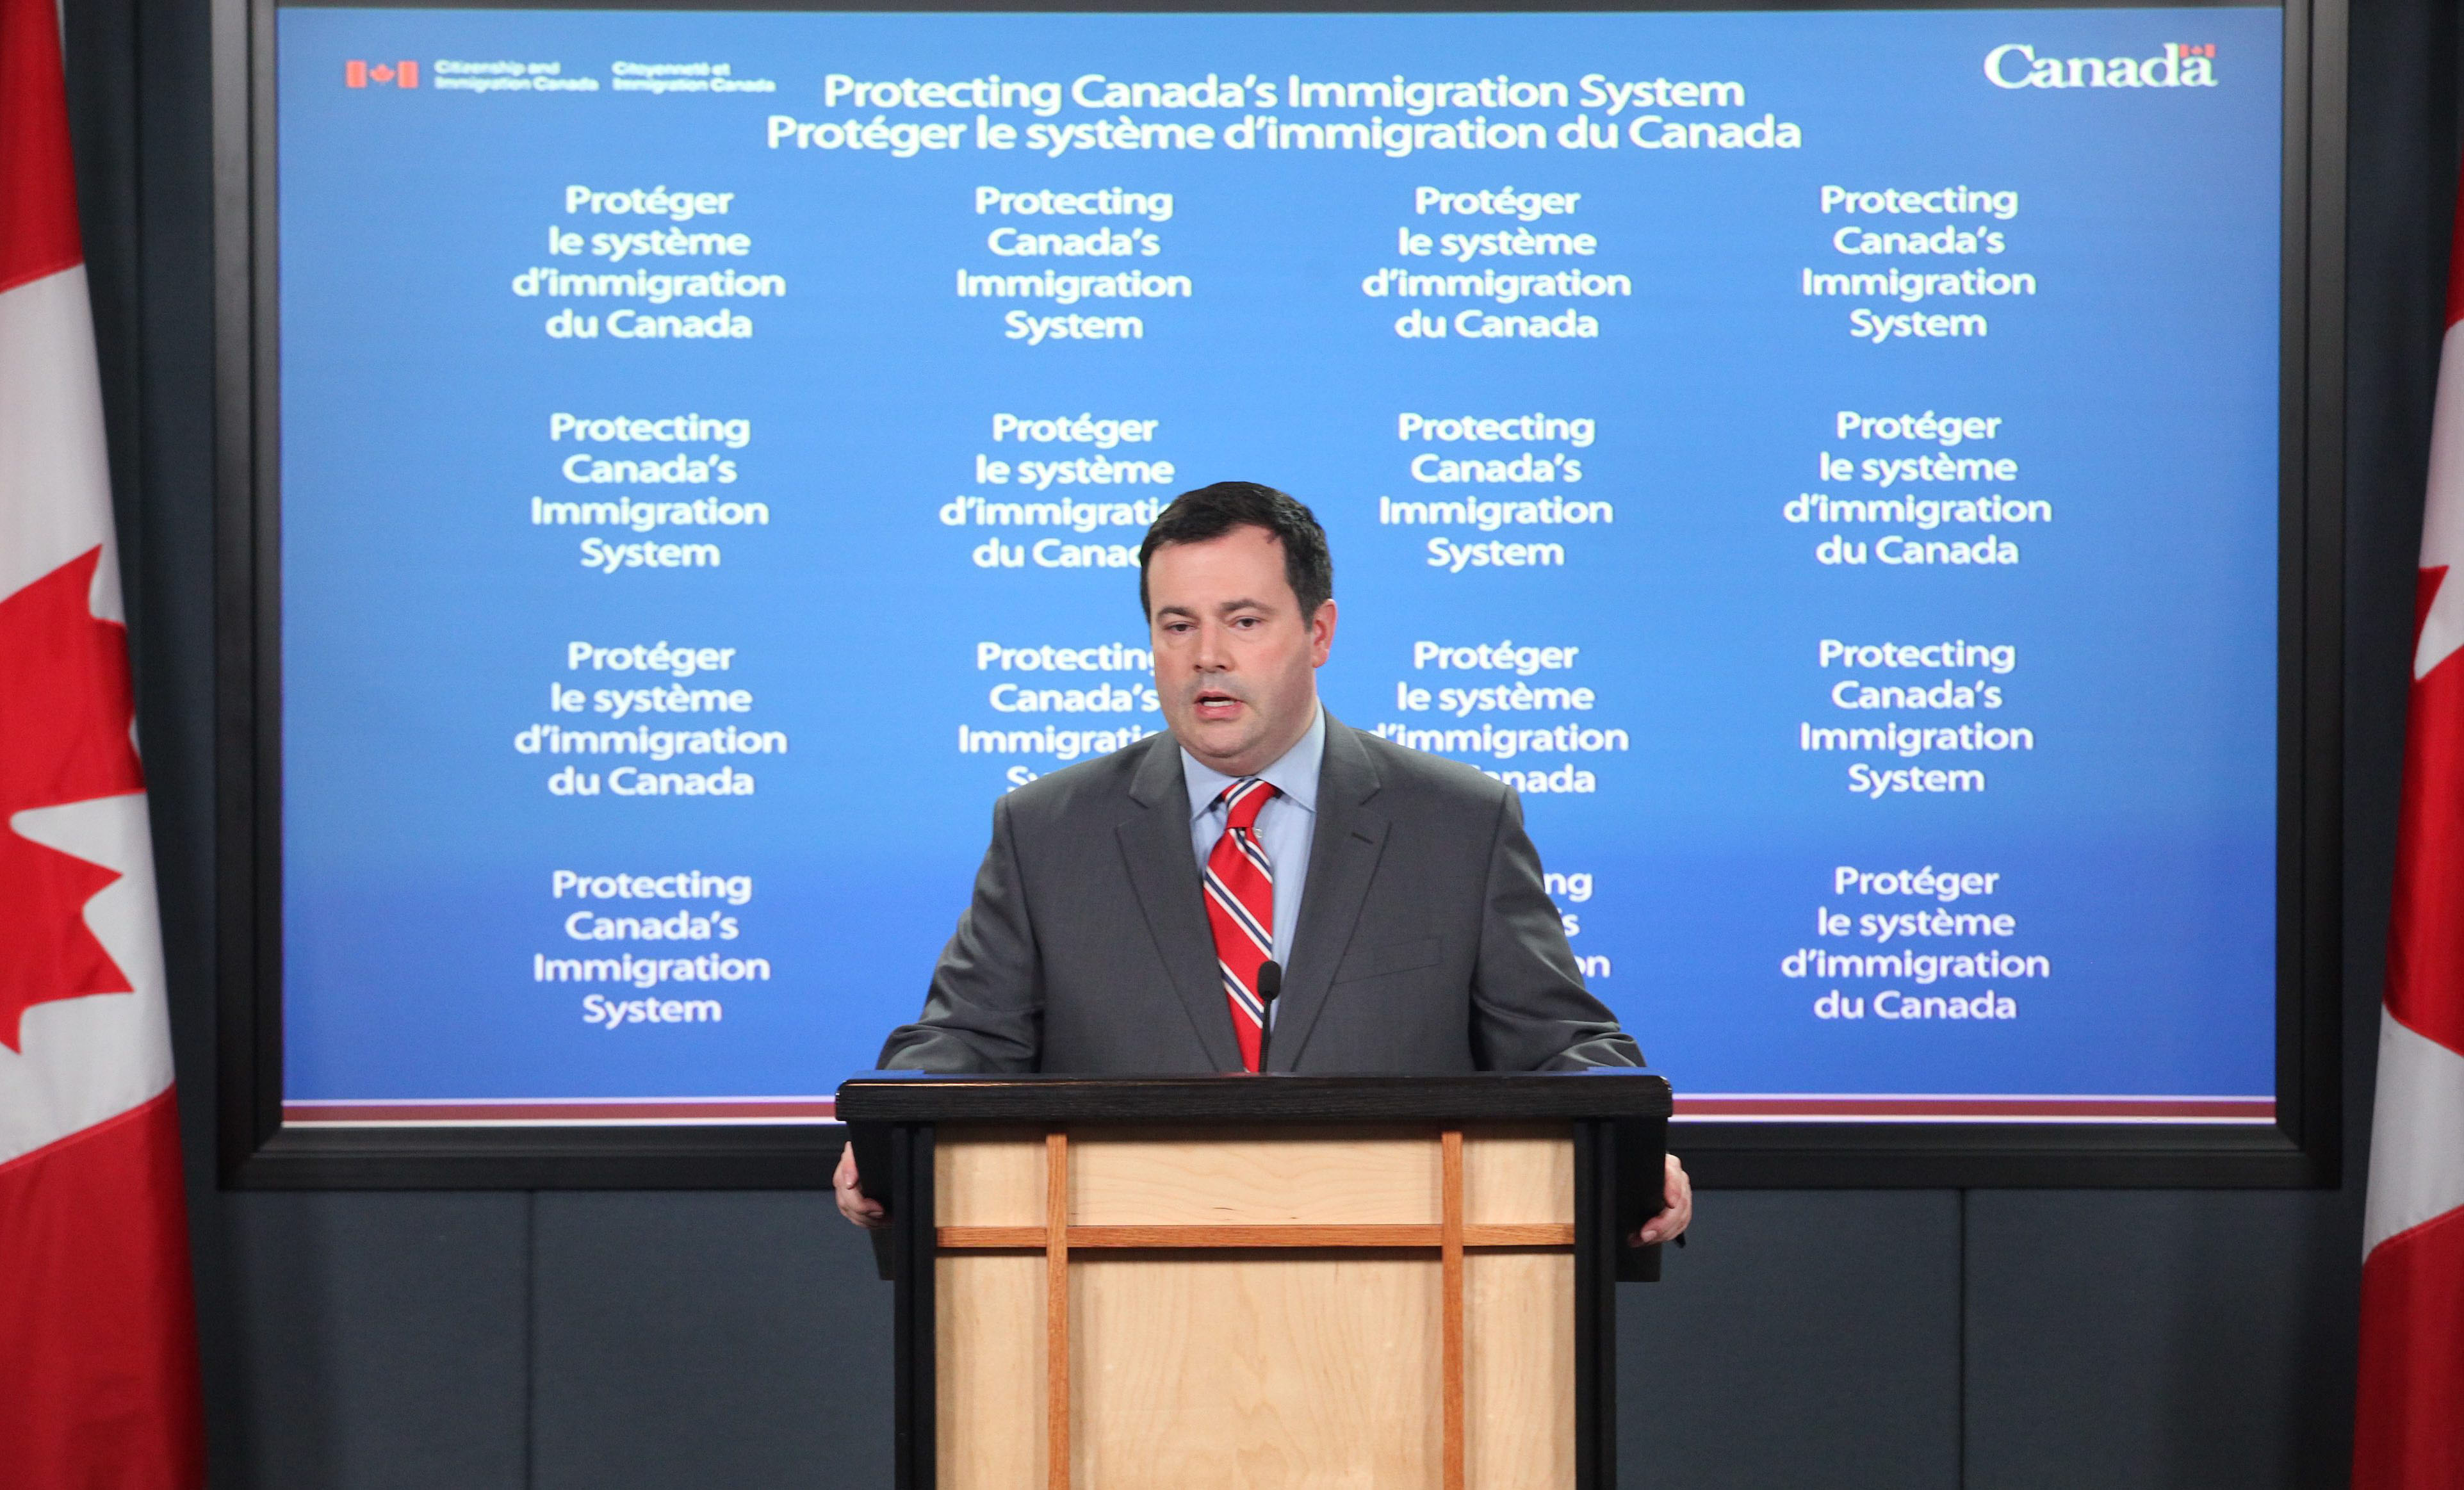 Canada's New Asylum System Comes into Force December 15, 2012